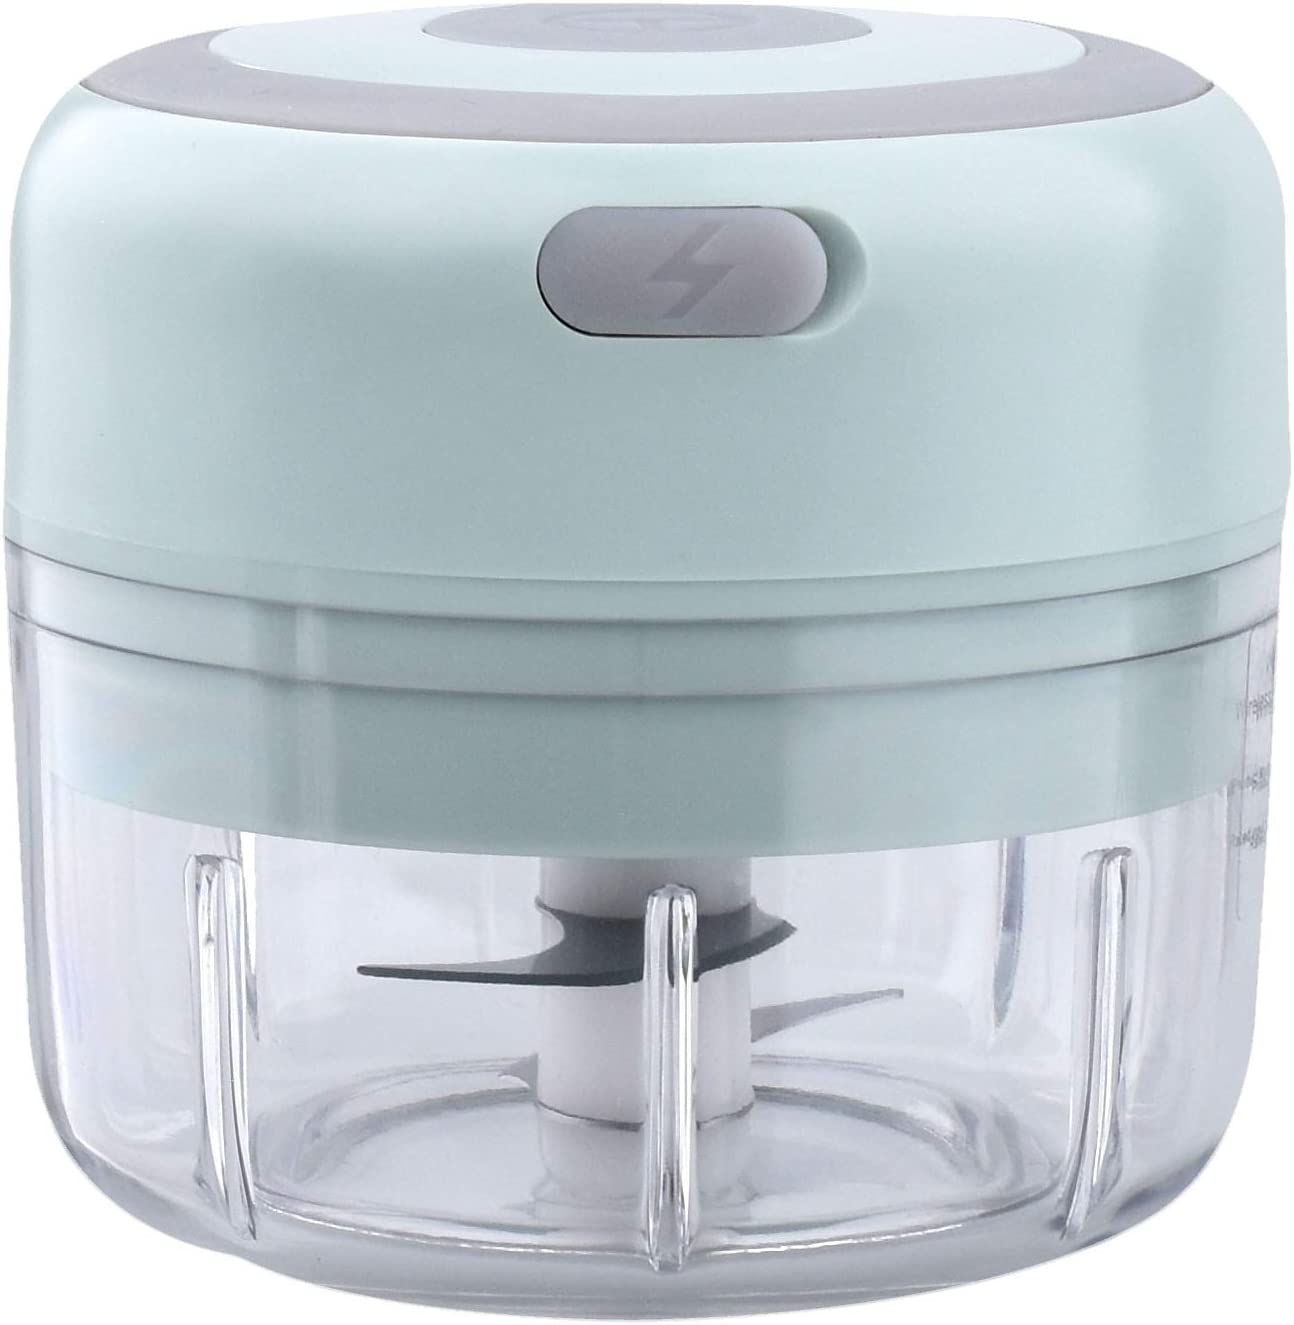 Mini Electric Garlic Crusher Chopper Mincer Squeezer, Food Chopper Compact, Cordless Electric Vegetable Chopper Handheld USB Rechargeable Powerful Blender (100ML)